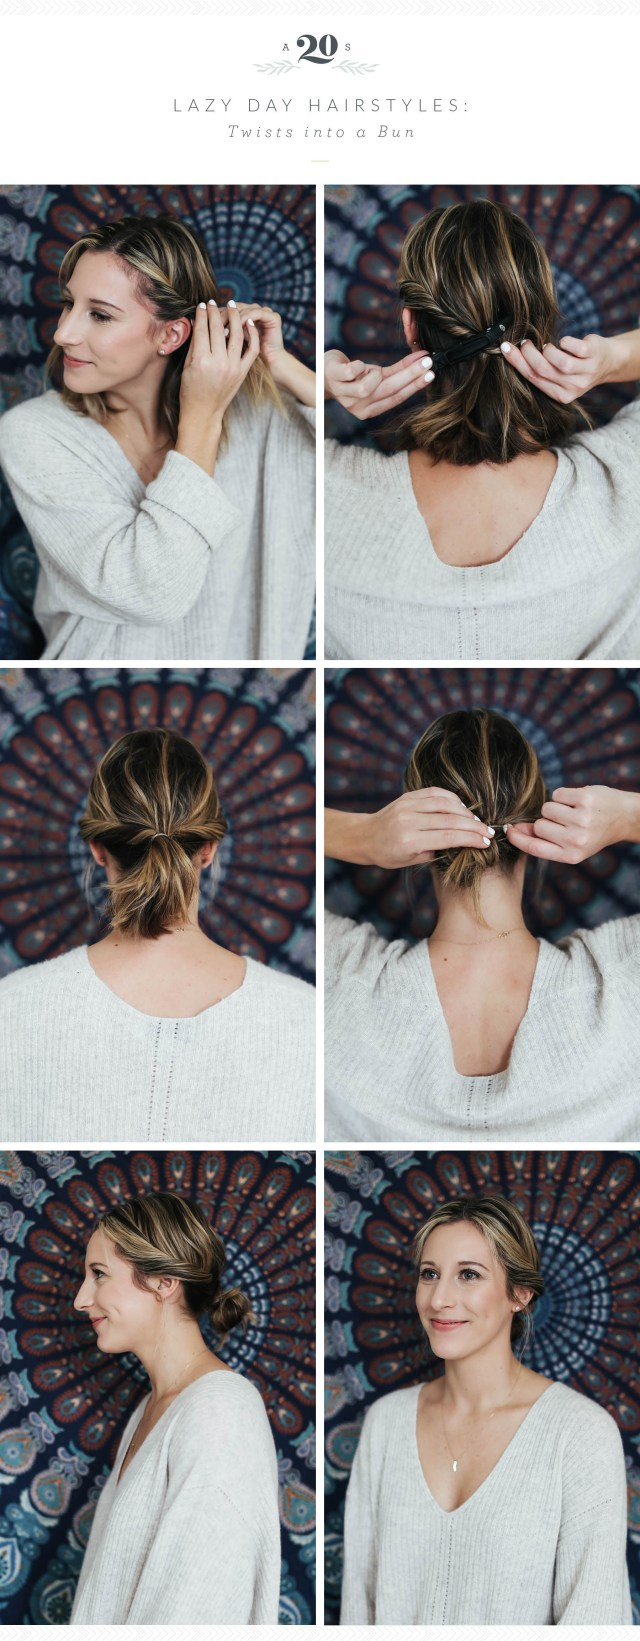 3 easy hairstyles for lazy days – advice from a twenty something